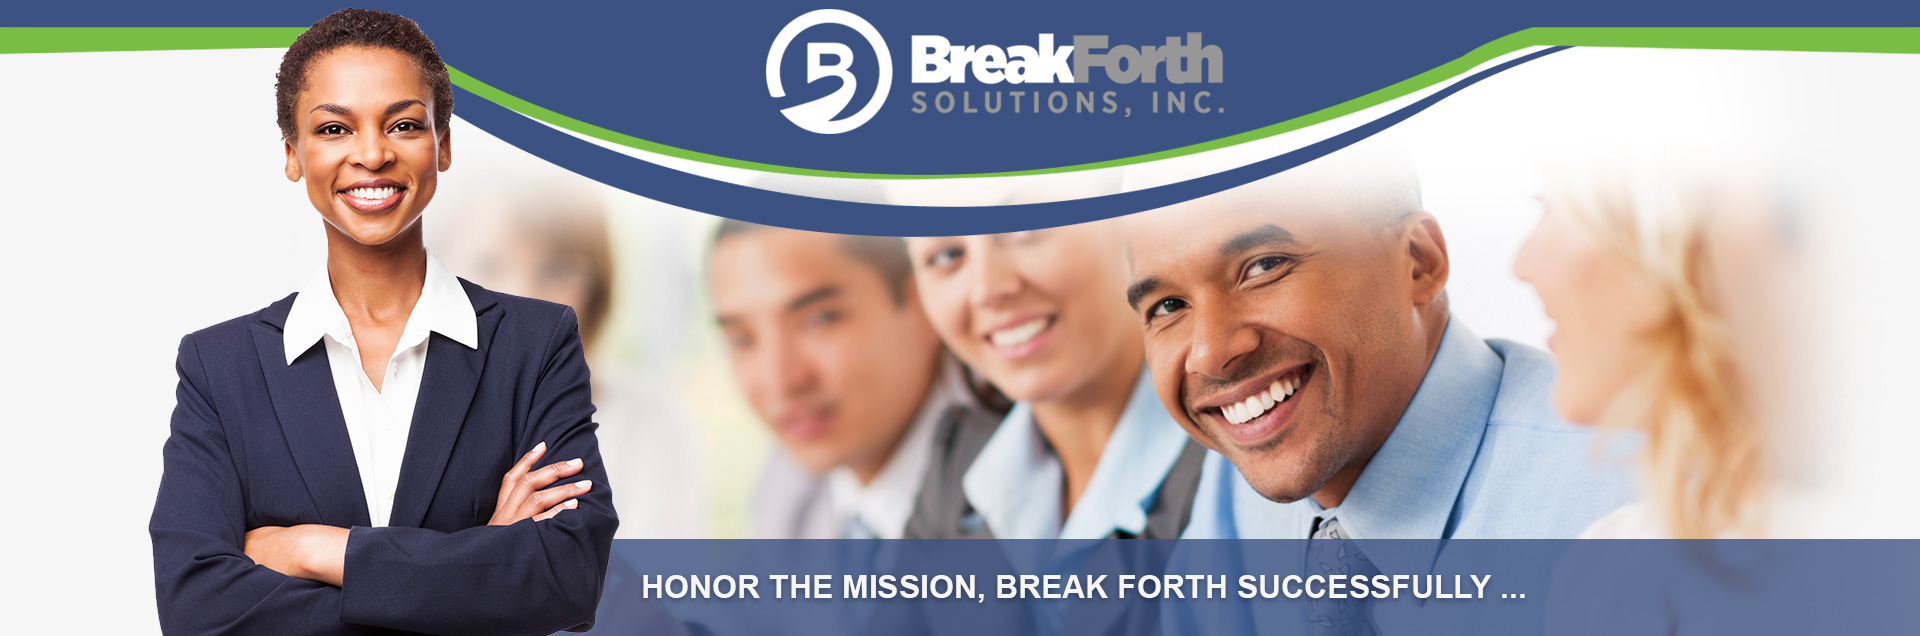 Breakforth Solutions, Inc. Honor the Mission, Break Forth Successfully...